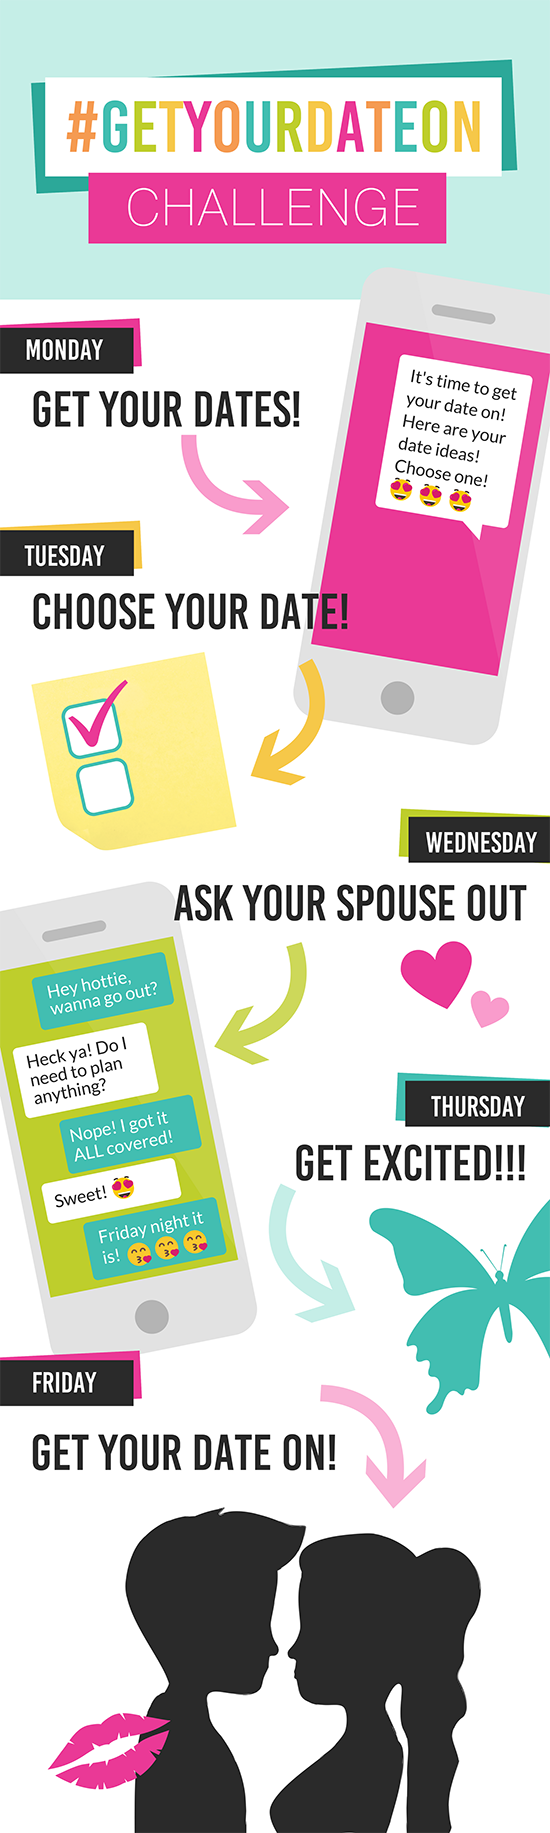 See how easy it is to find date ideas for married couples.